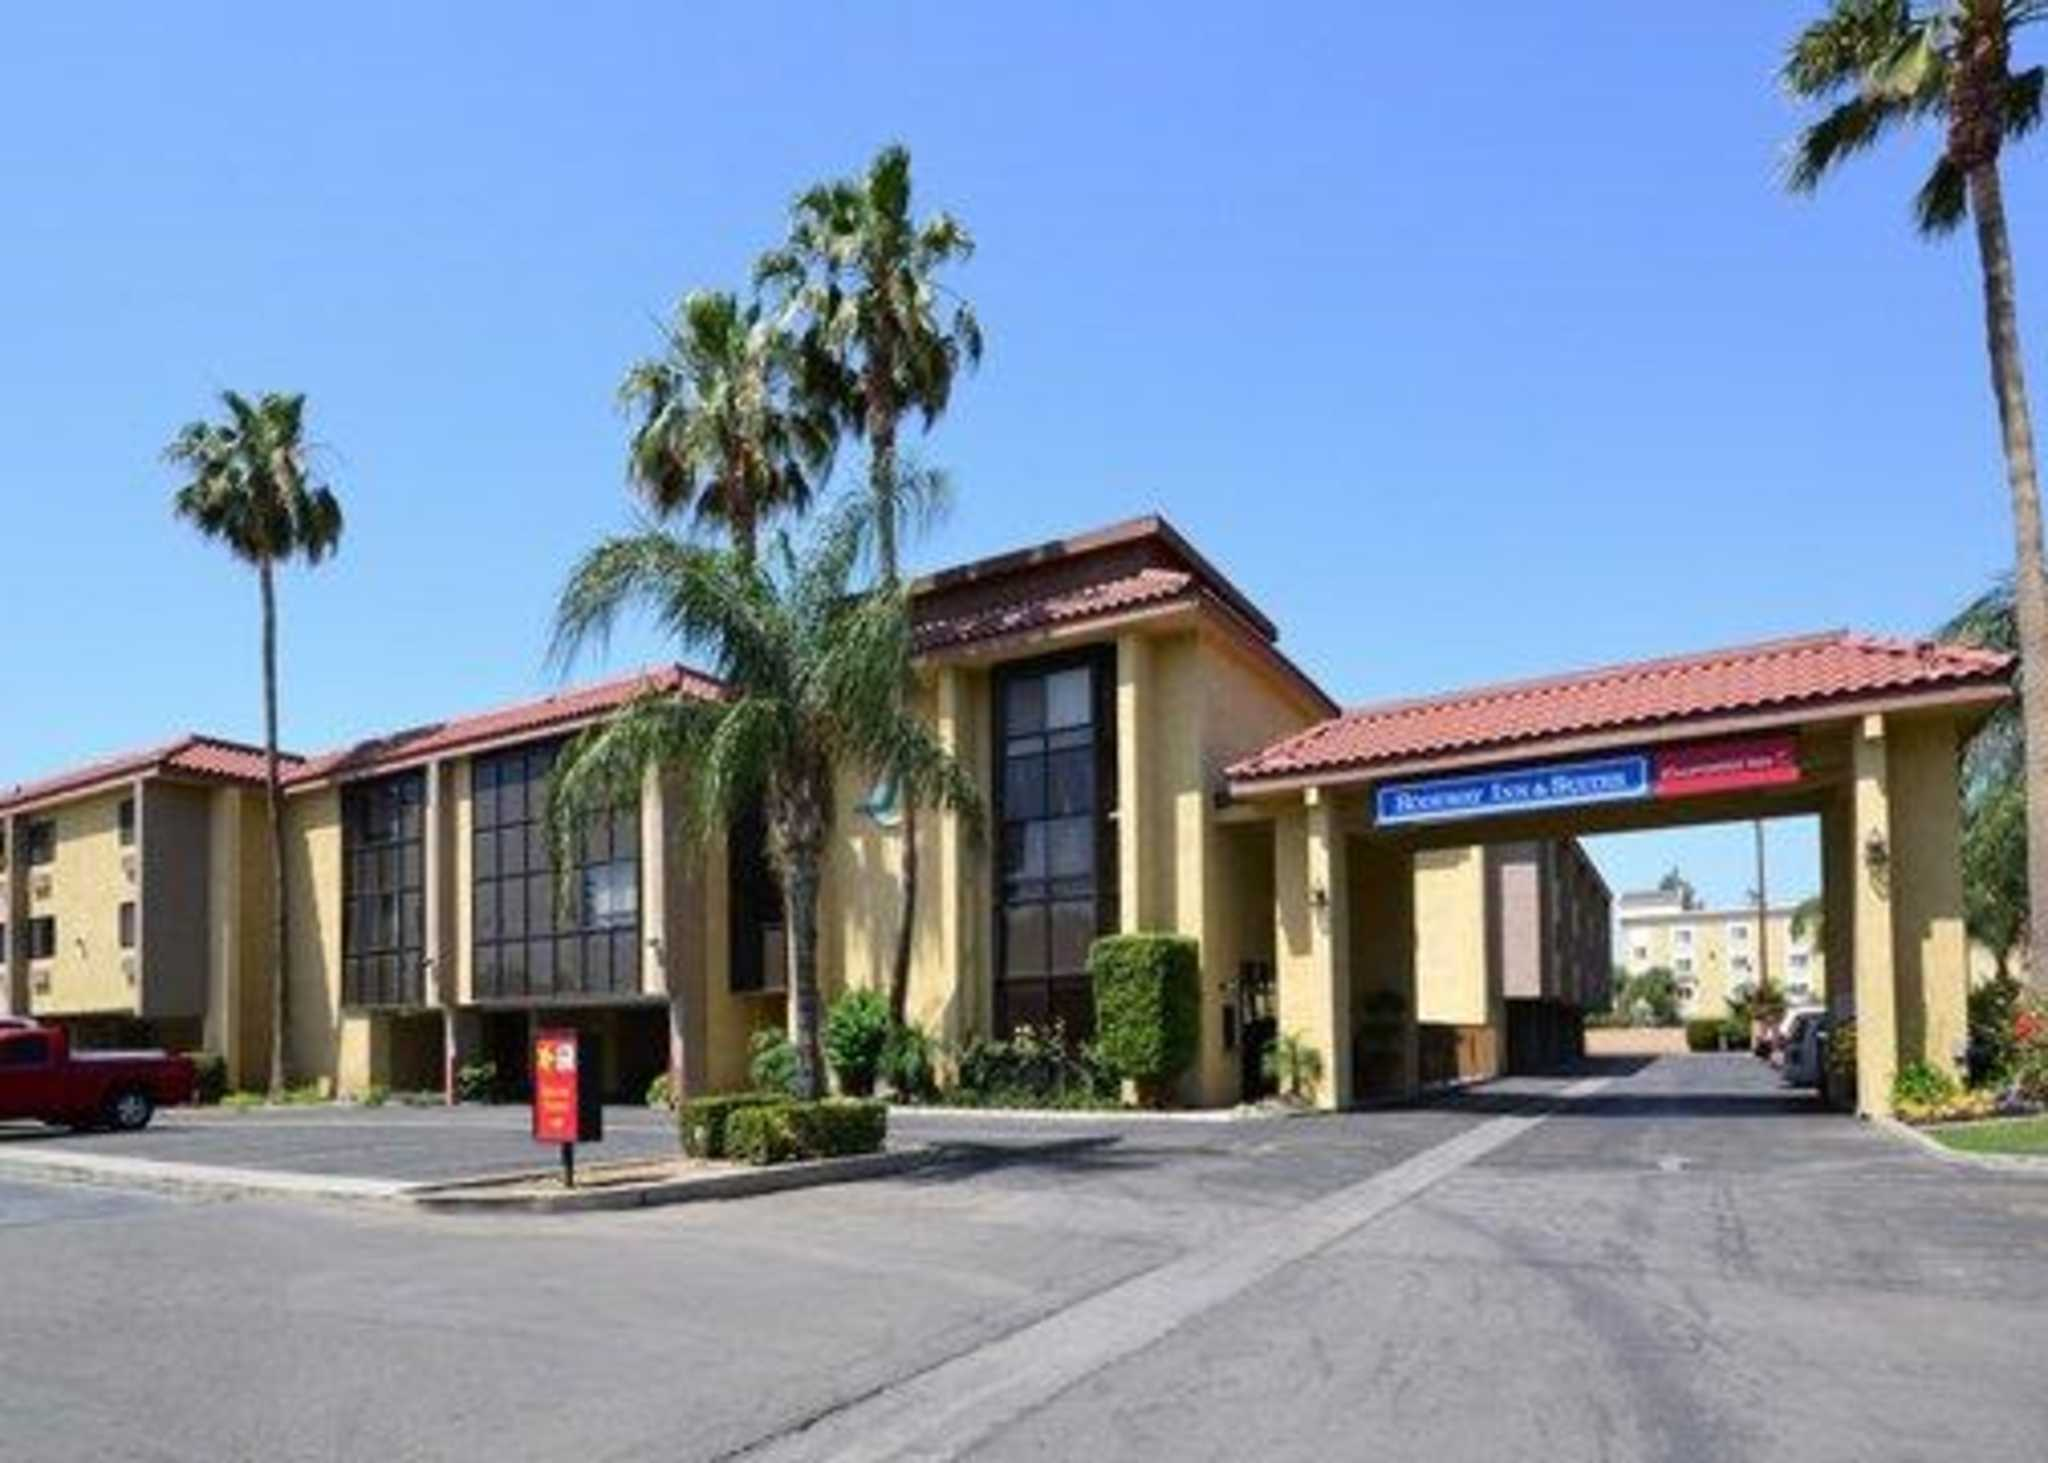 Hotels And Motels In Bakersfield Ca